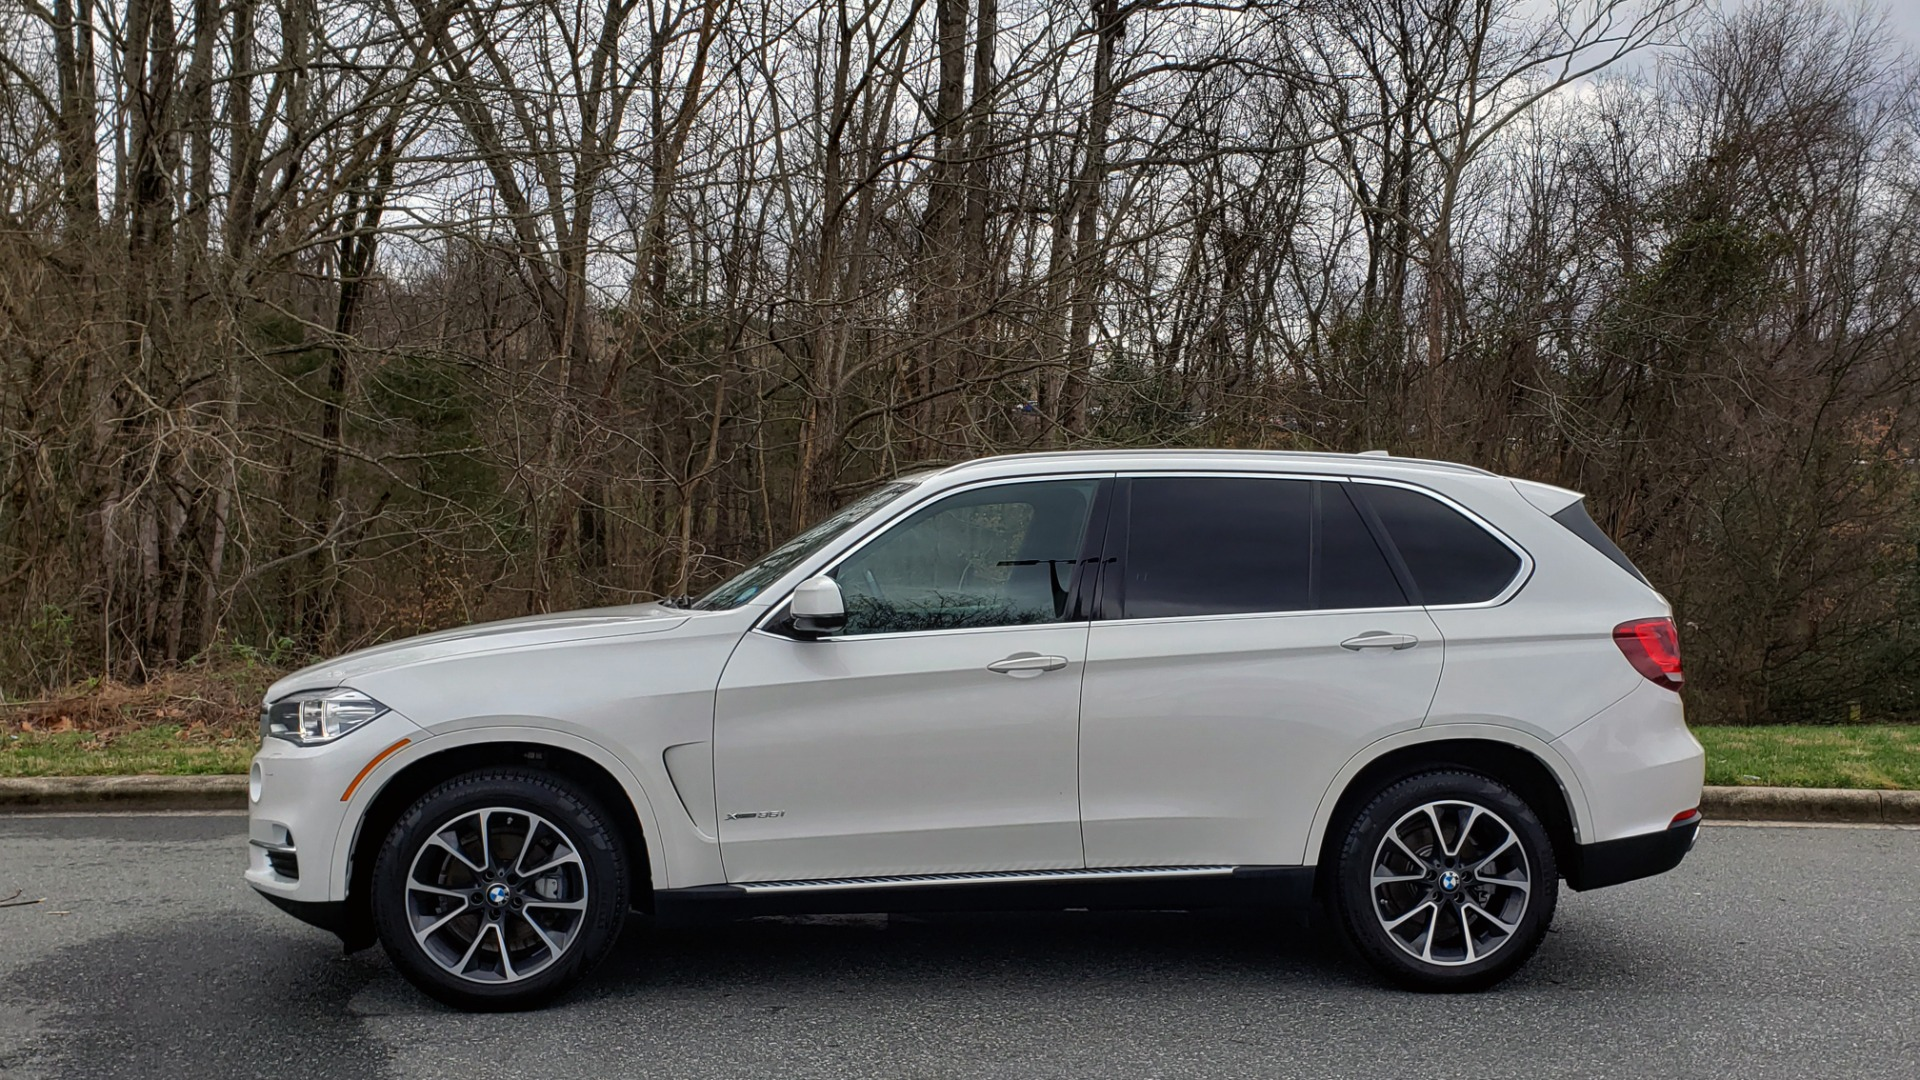 Used 2017 BMW X5 XDRIVE35I / NAV / HUD / DRVR ASST / SUNROOF / REARVIEW for sale Sold at Formula Imports in Charlotte NC 28227 2